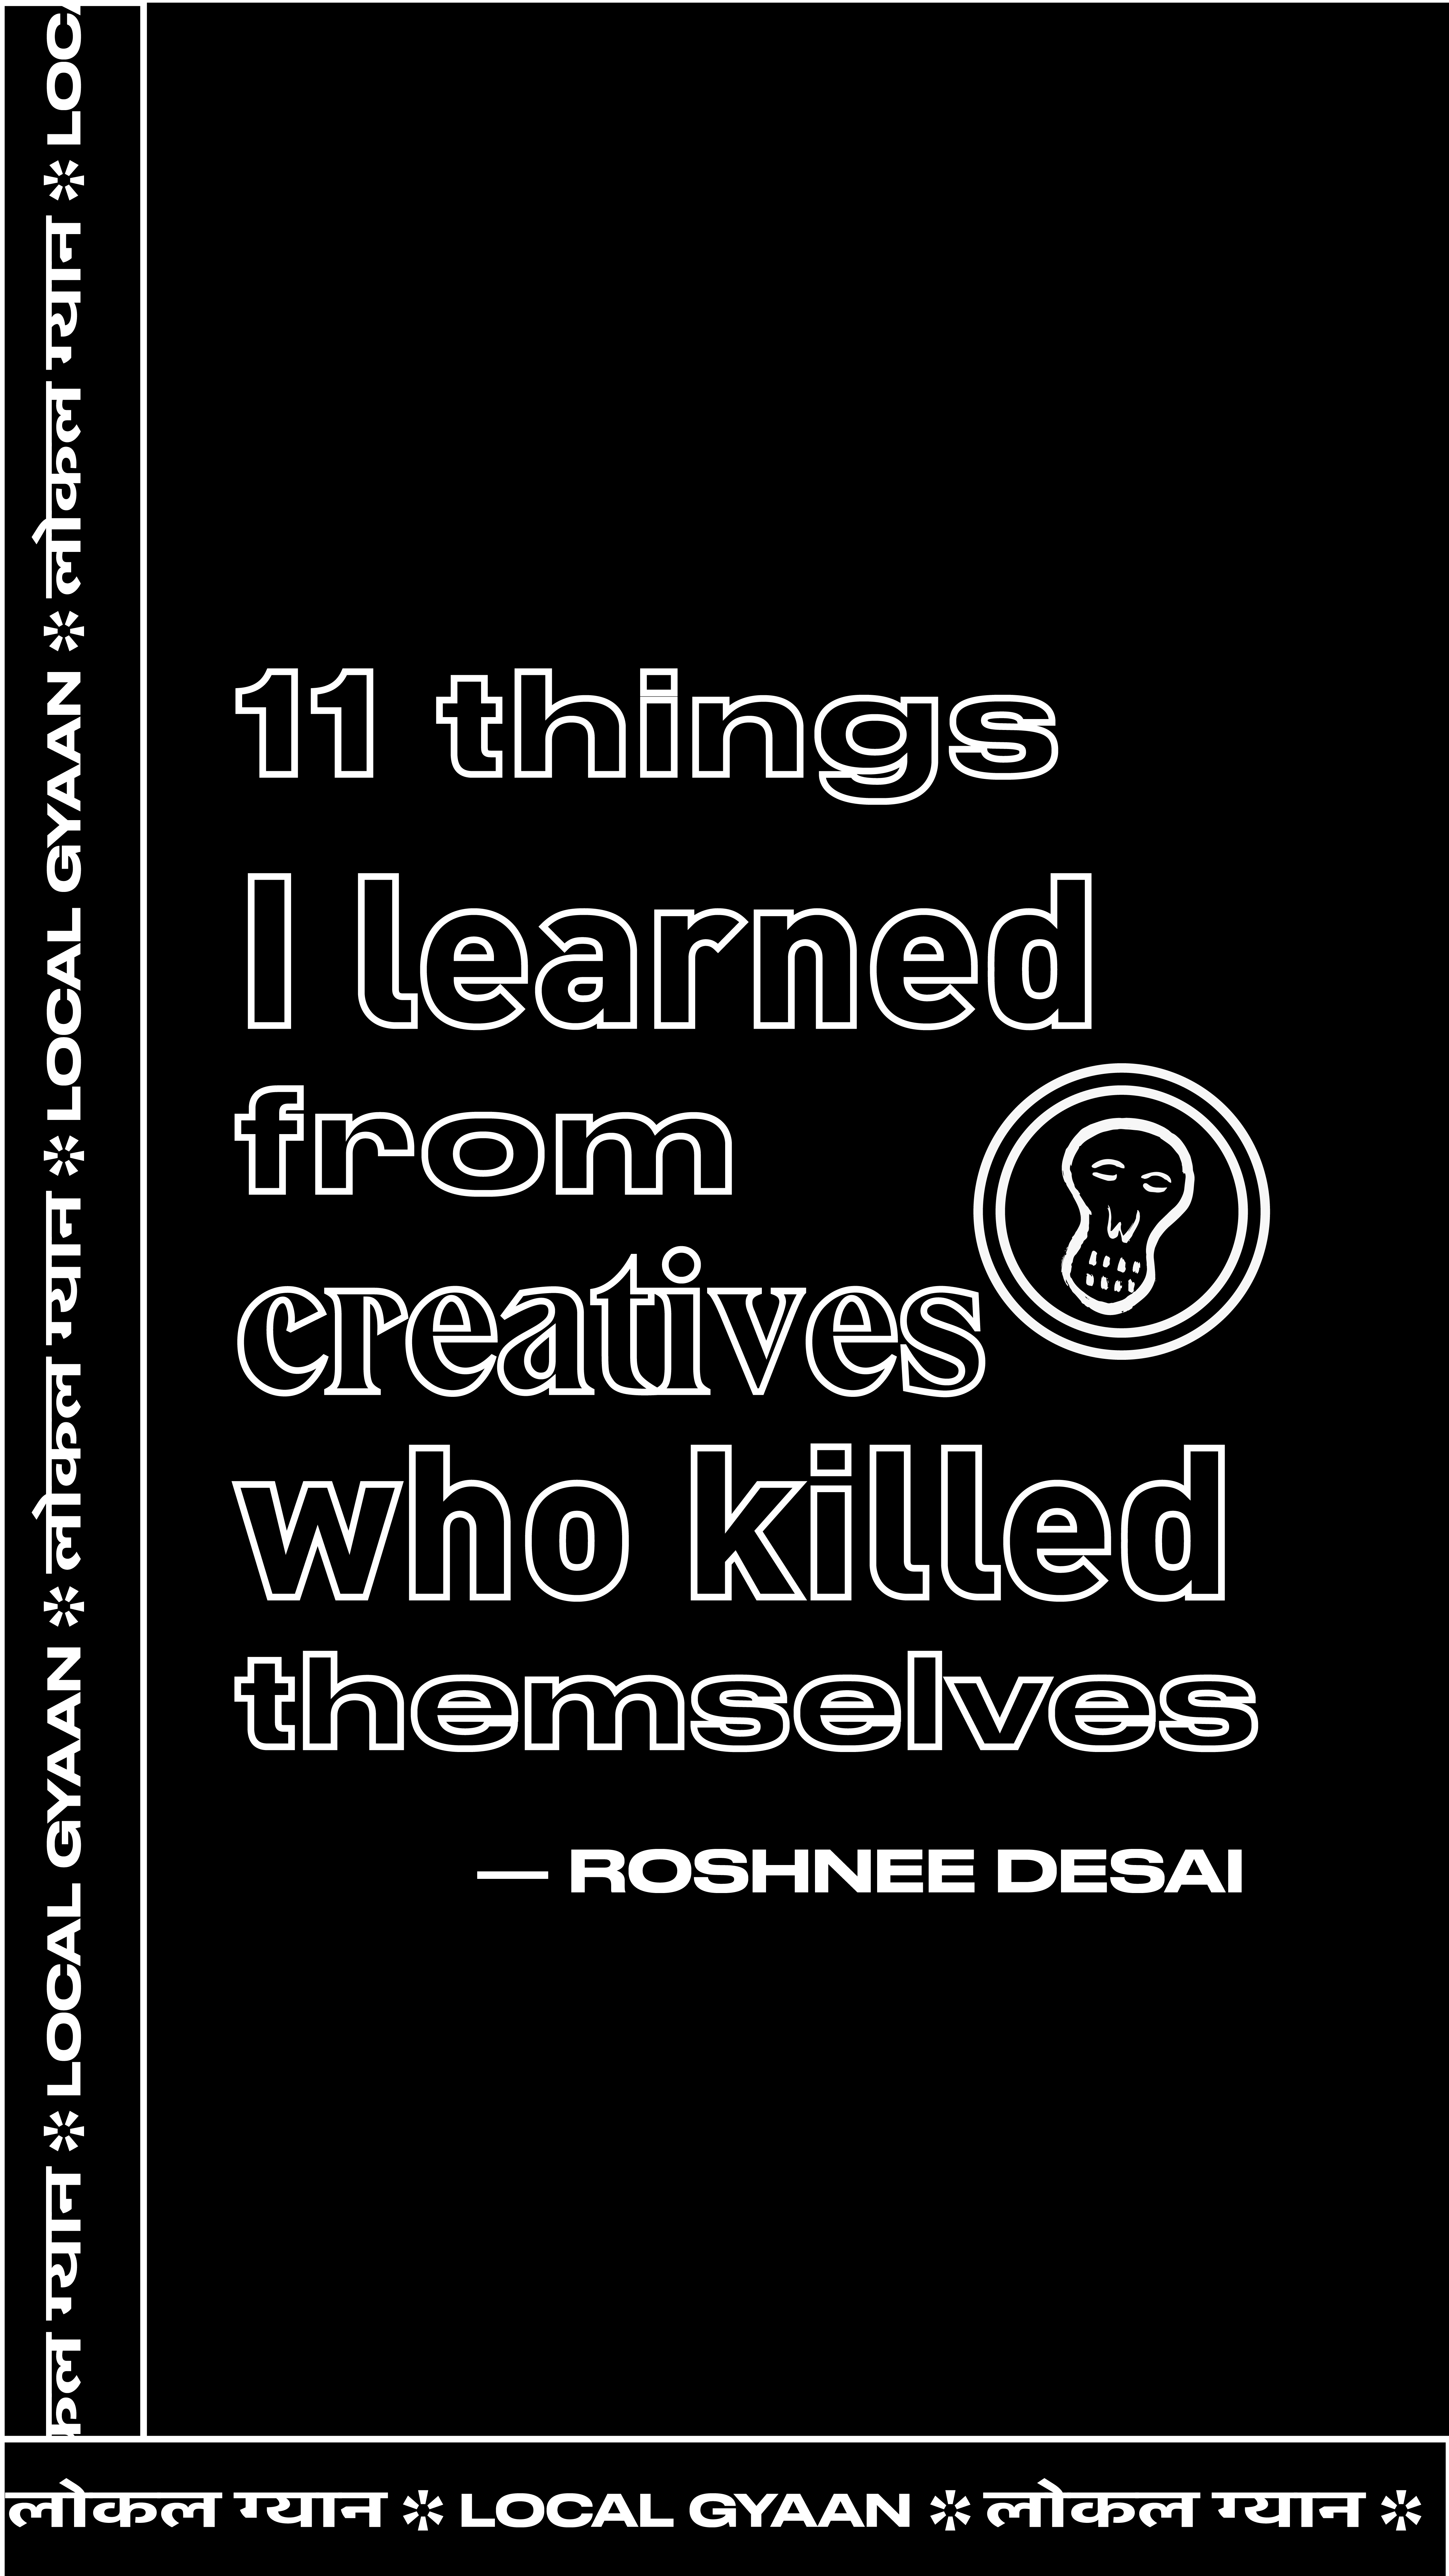 11 things I learned from creatives that killed themselves